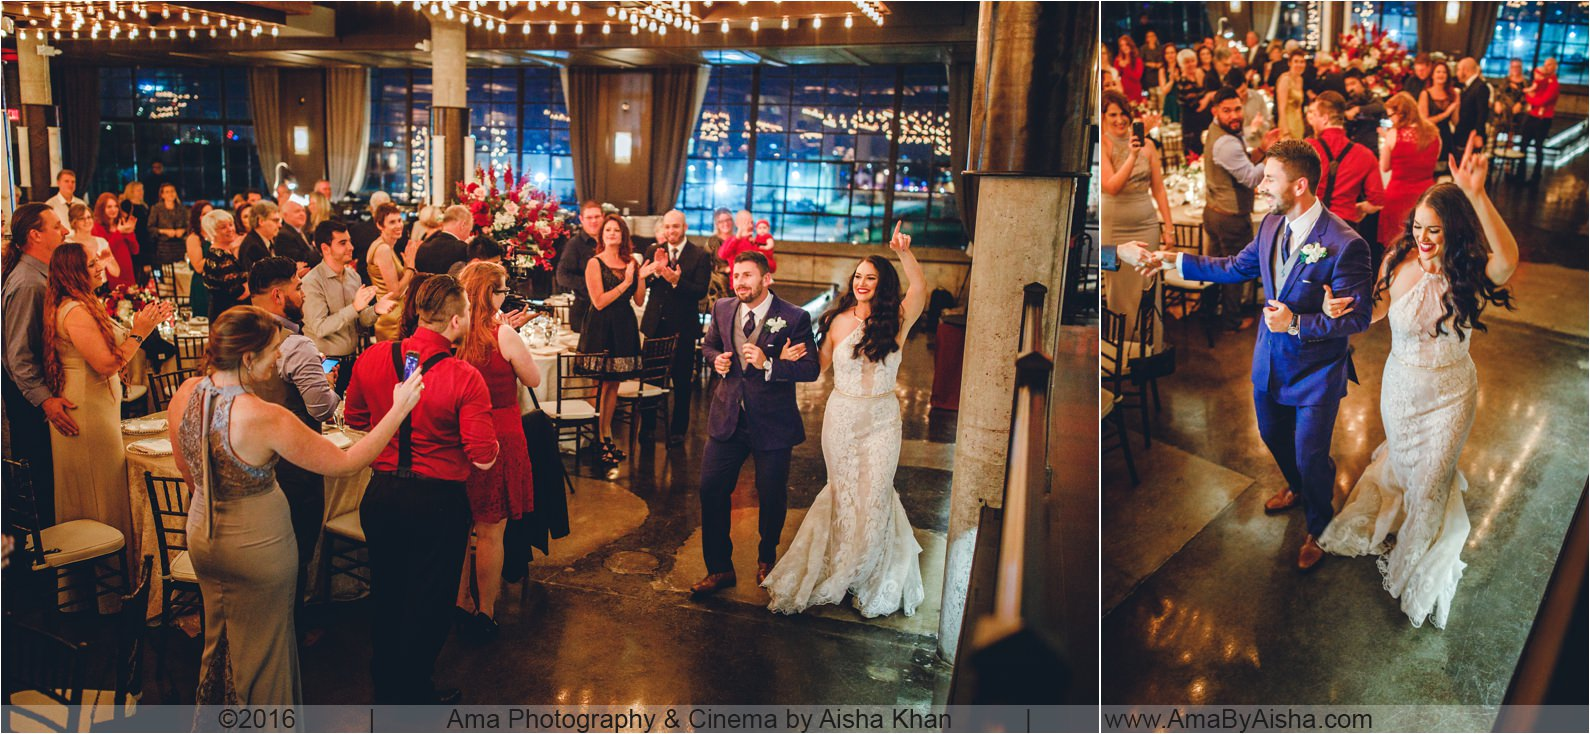 The Astorian wedding of Sarah & Chris